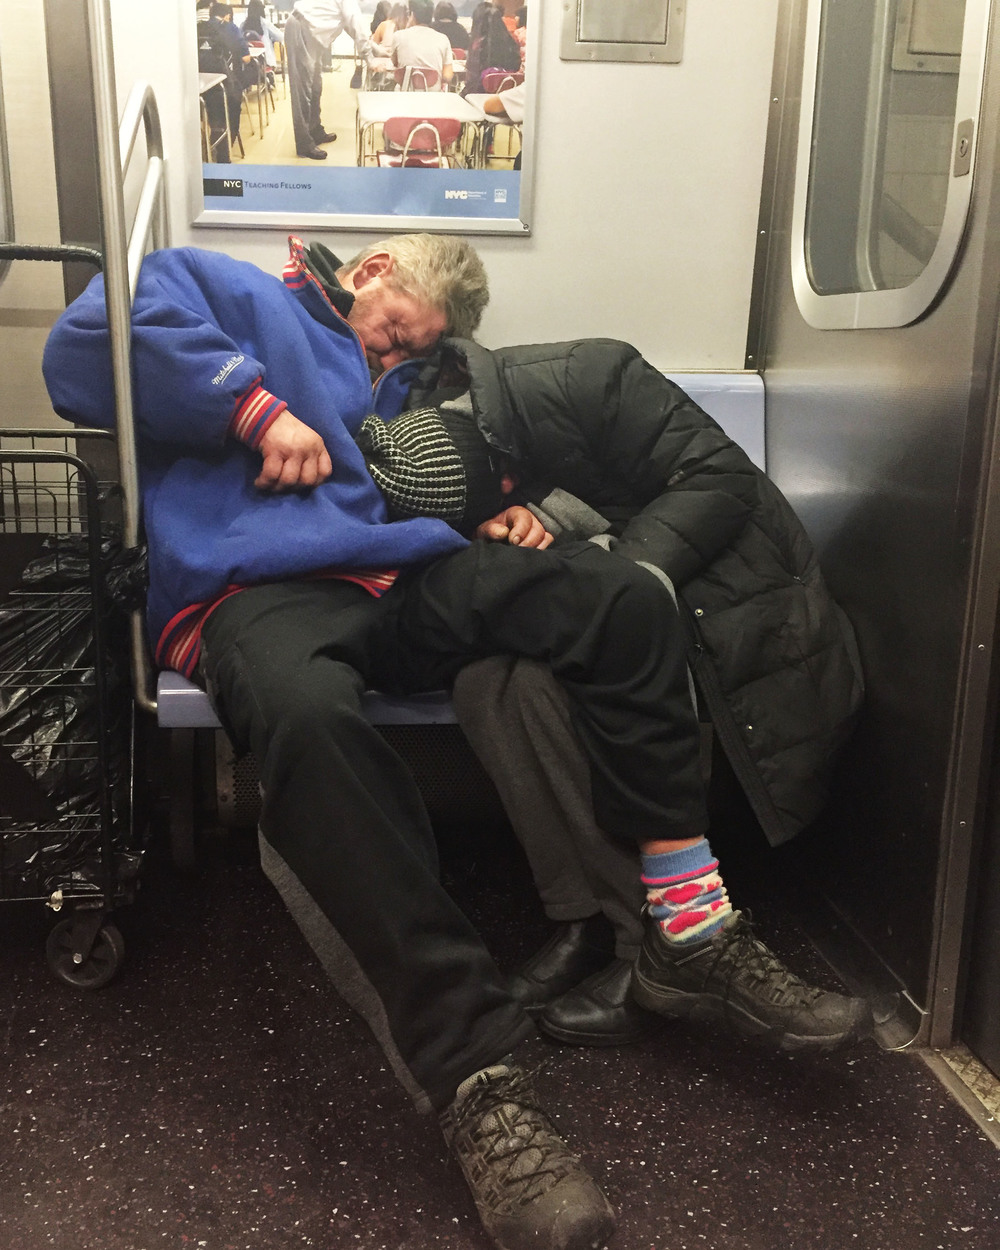 PE_Subway_OldCoupleSleep.jpg